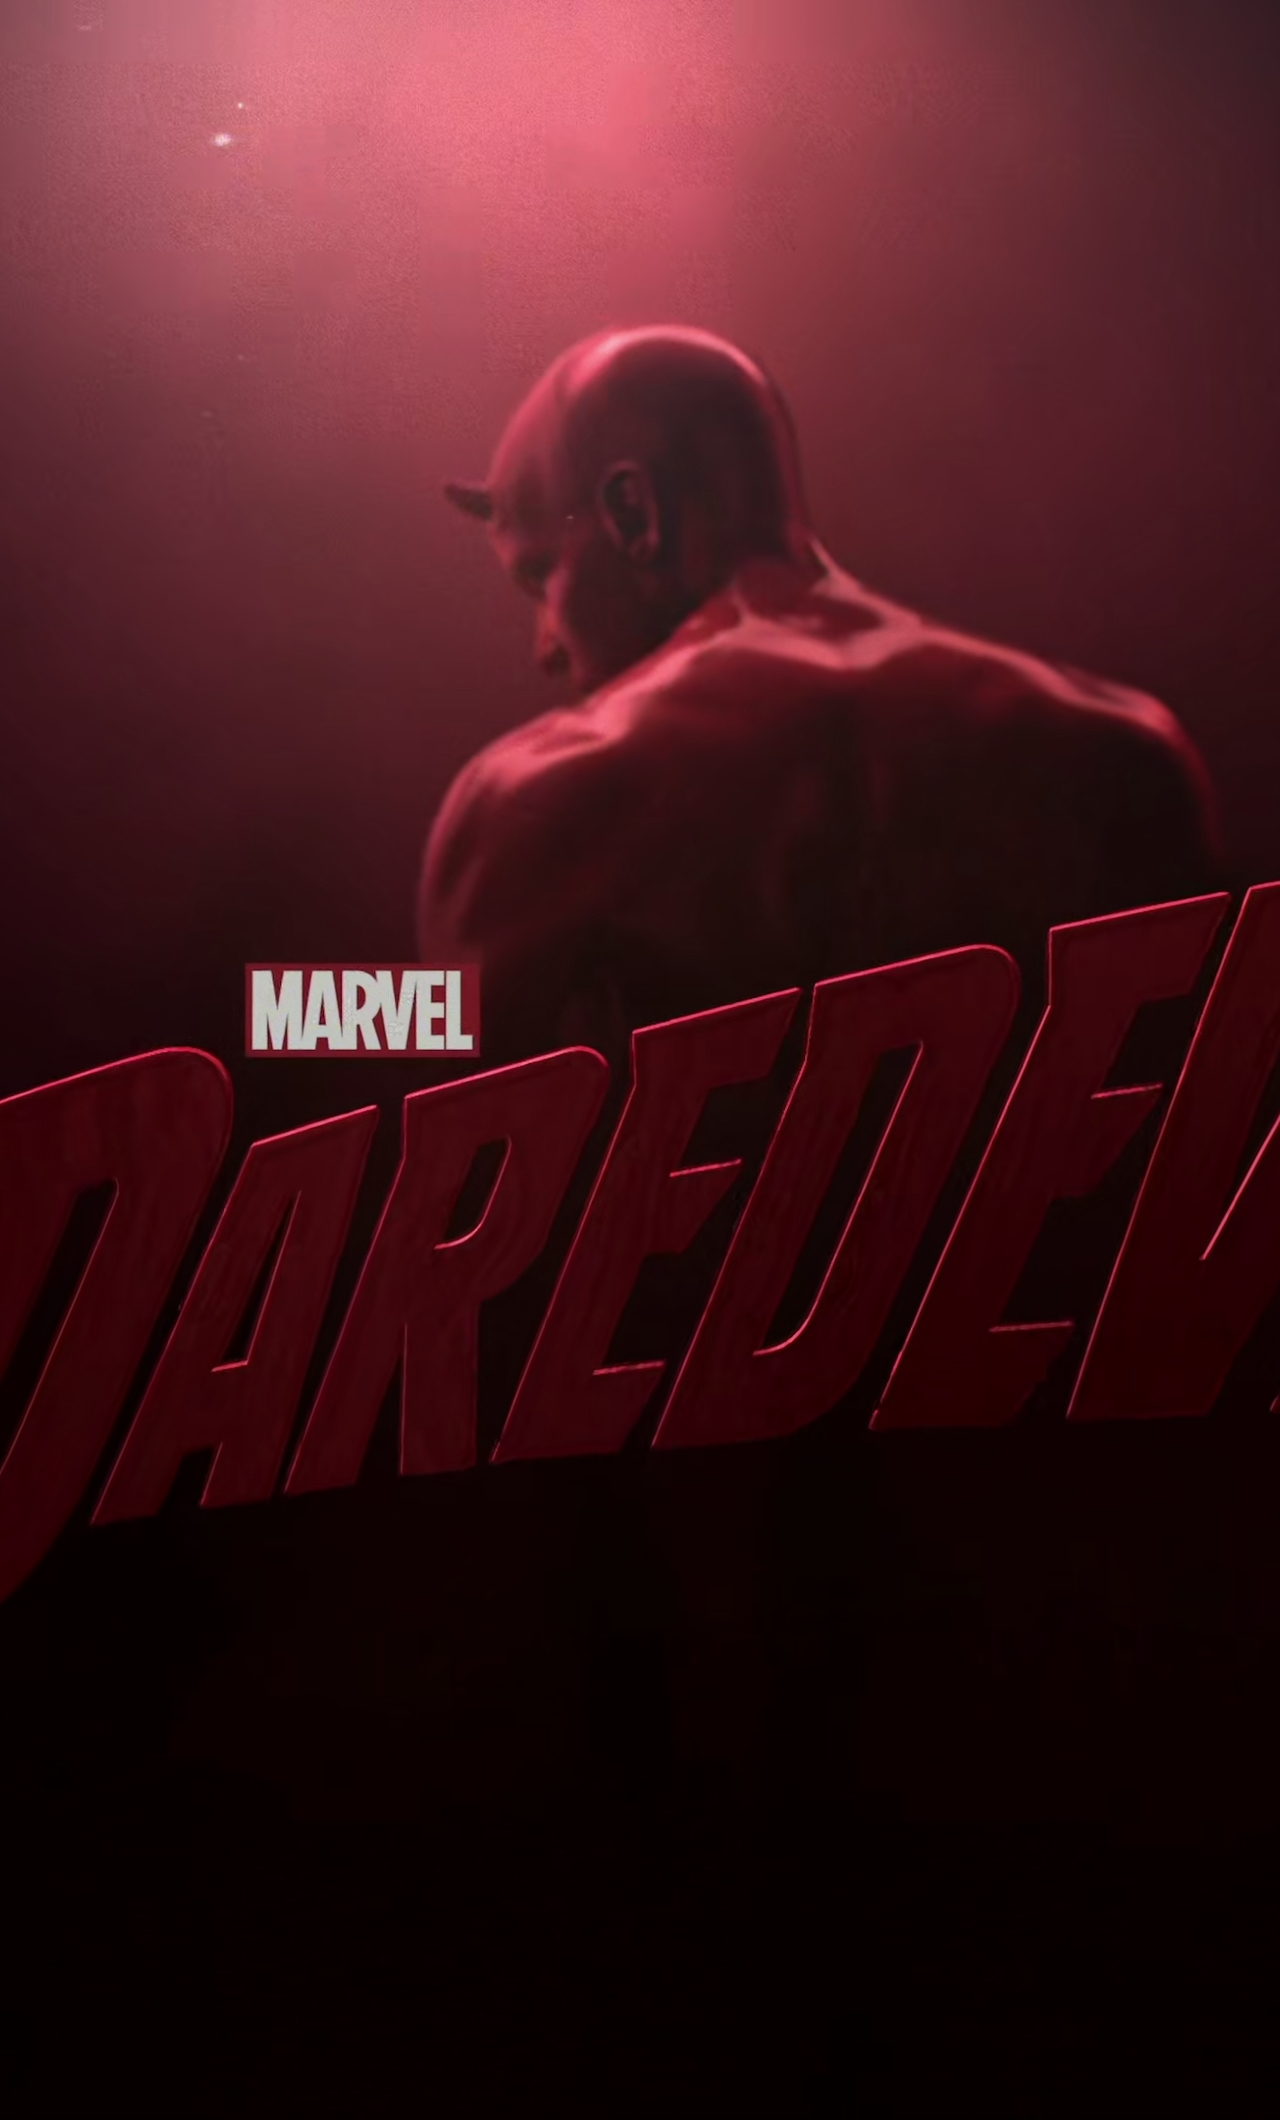 Marvel Daredevil Poster HD 4K Wallpaper